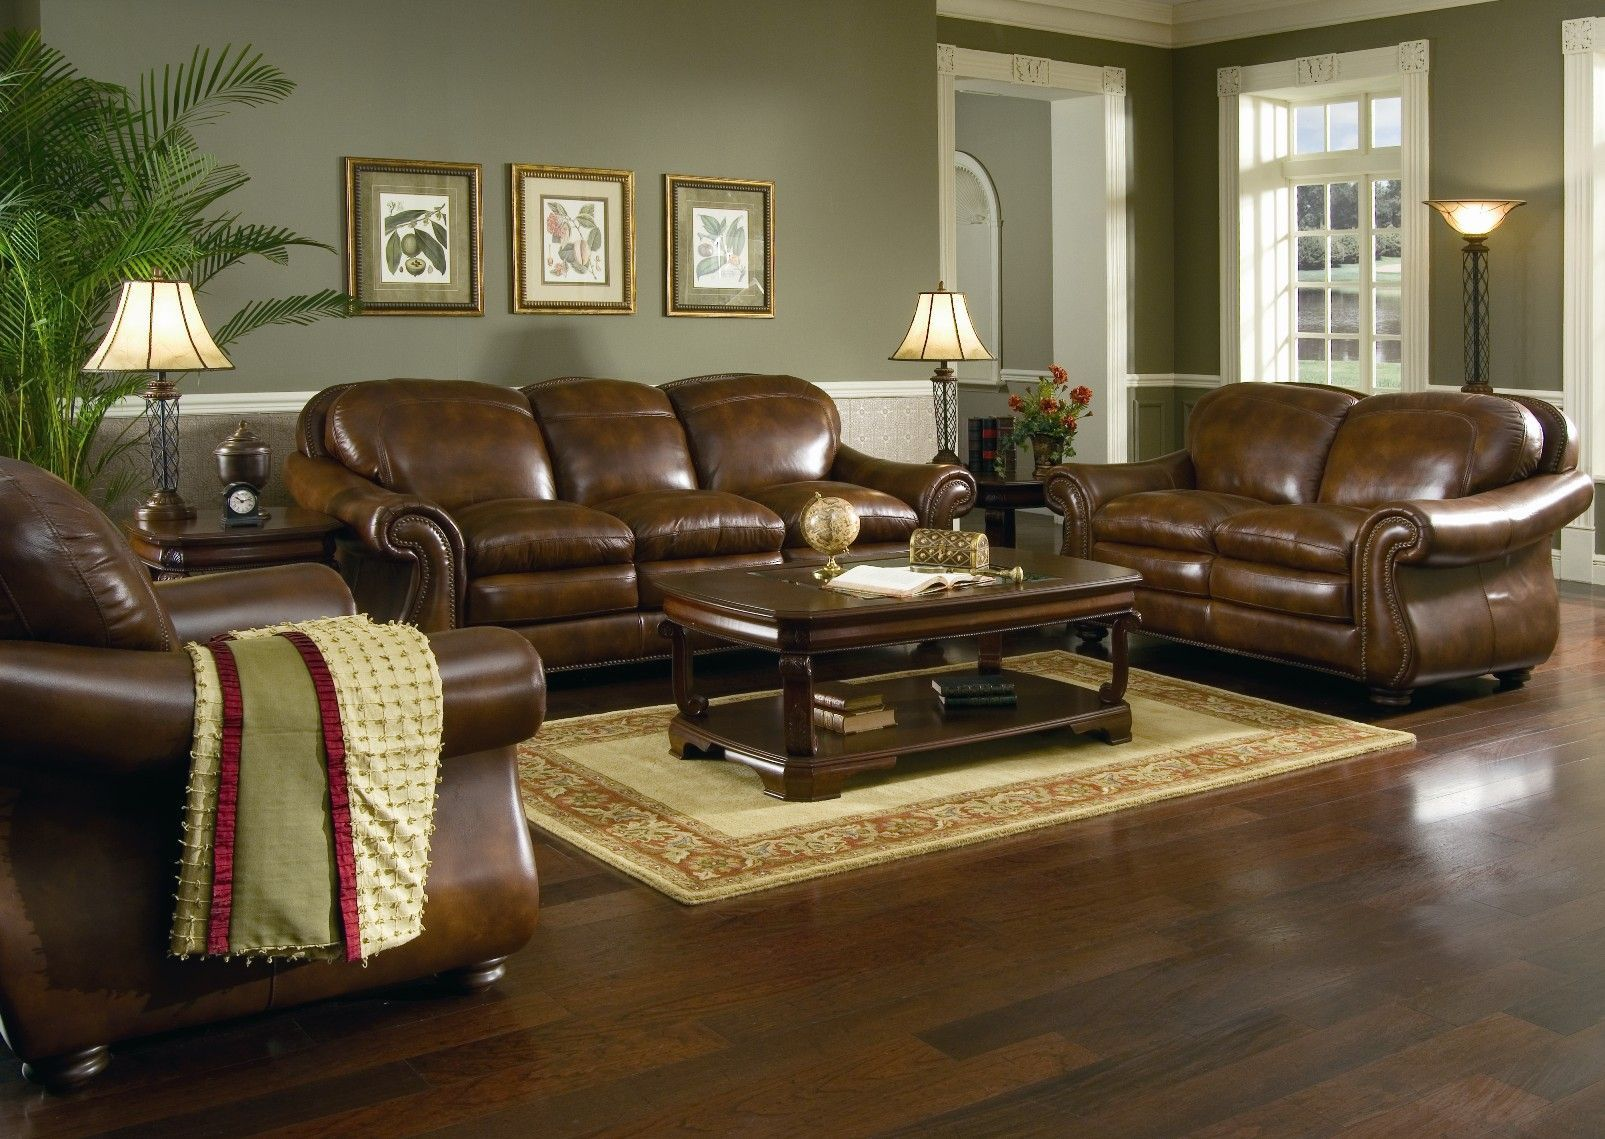 Best Brown Leather Sofa Set For Living Room With Dark Hardwood 400 x 300